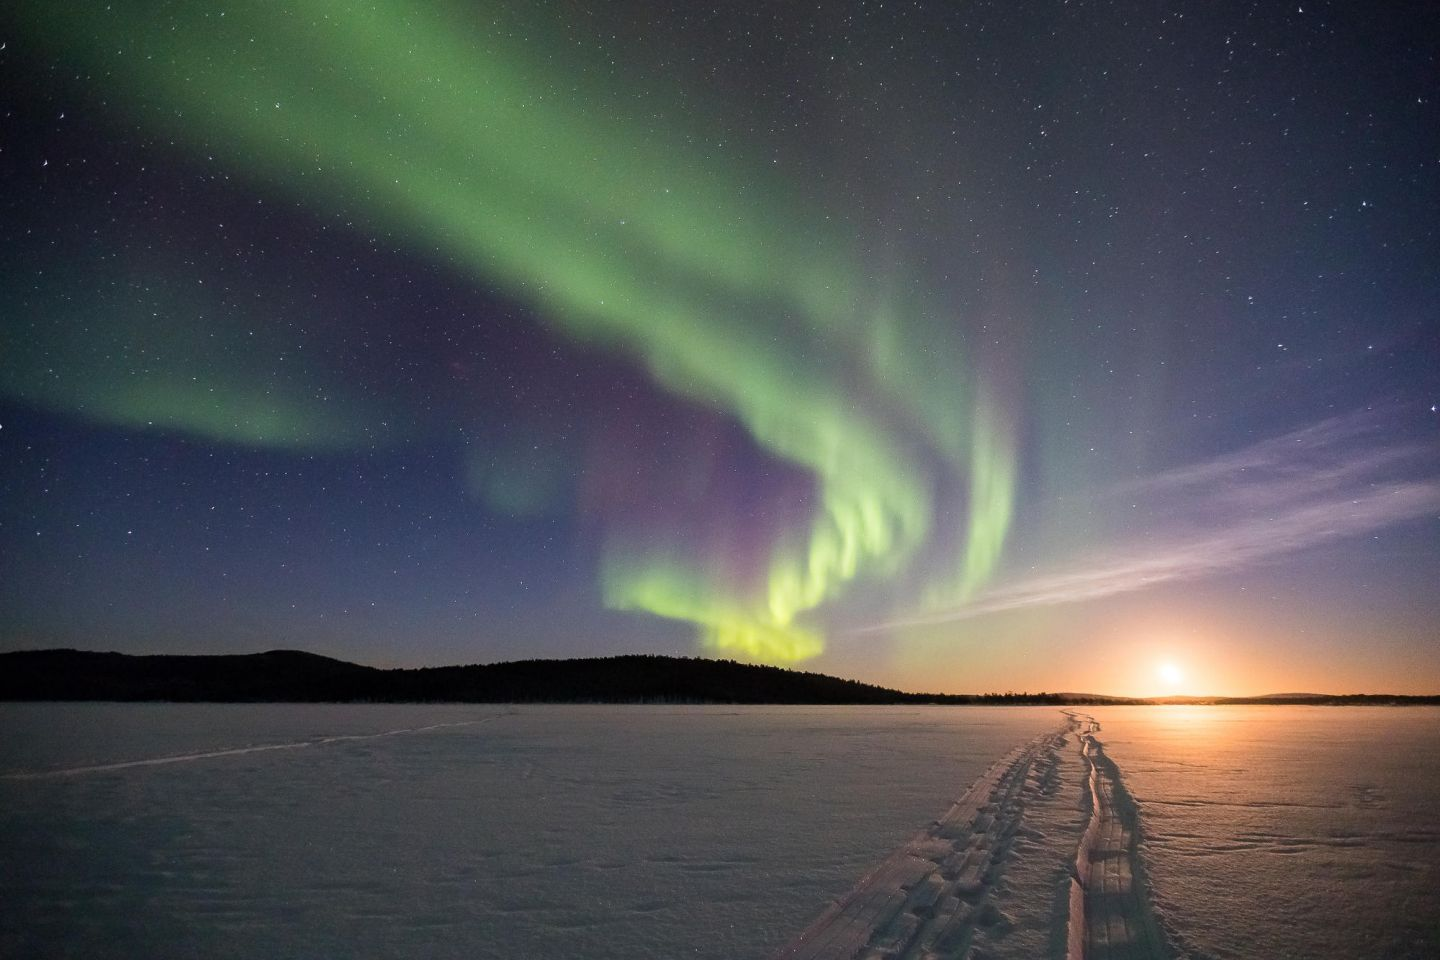 Path across snow under Northern Lights